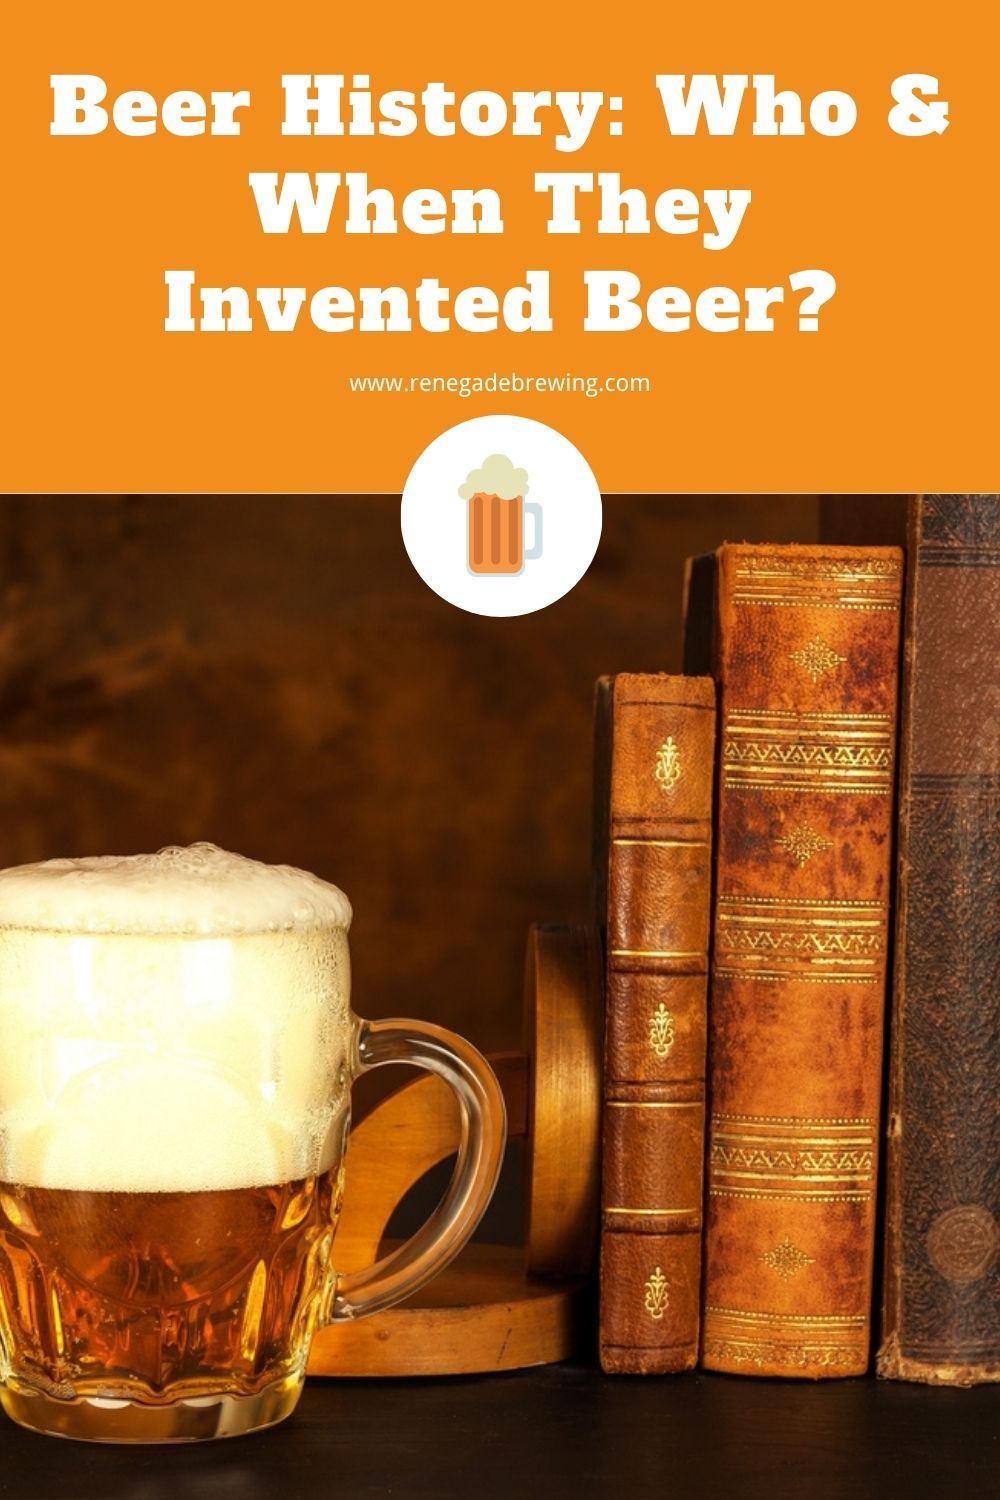 Beer History Who & When They Invented Beer 2